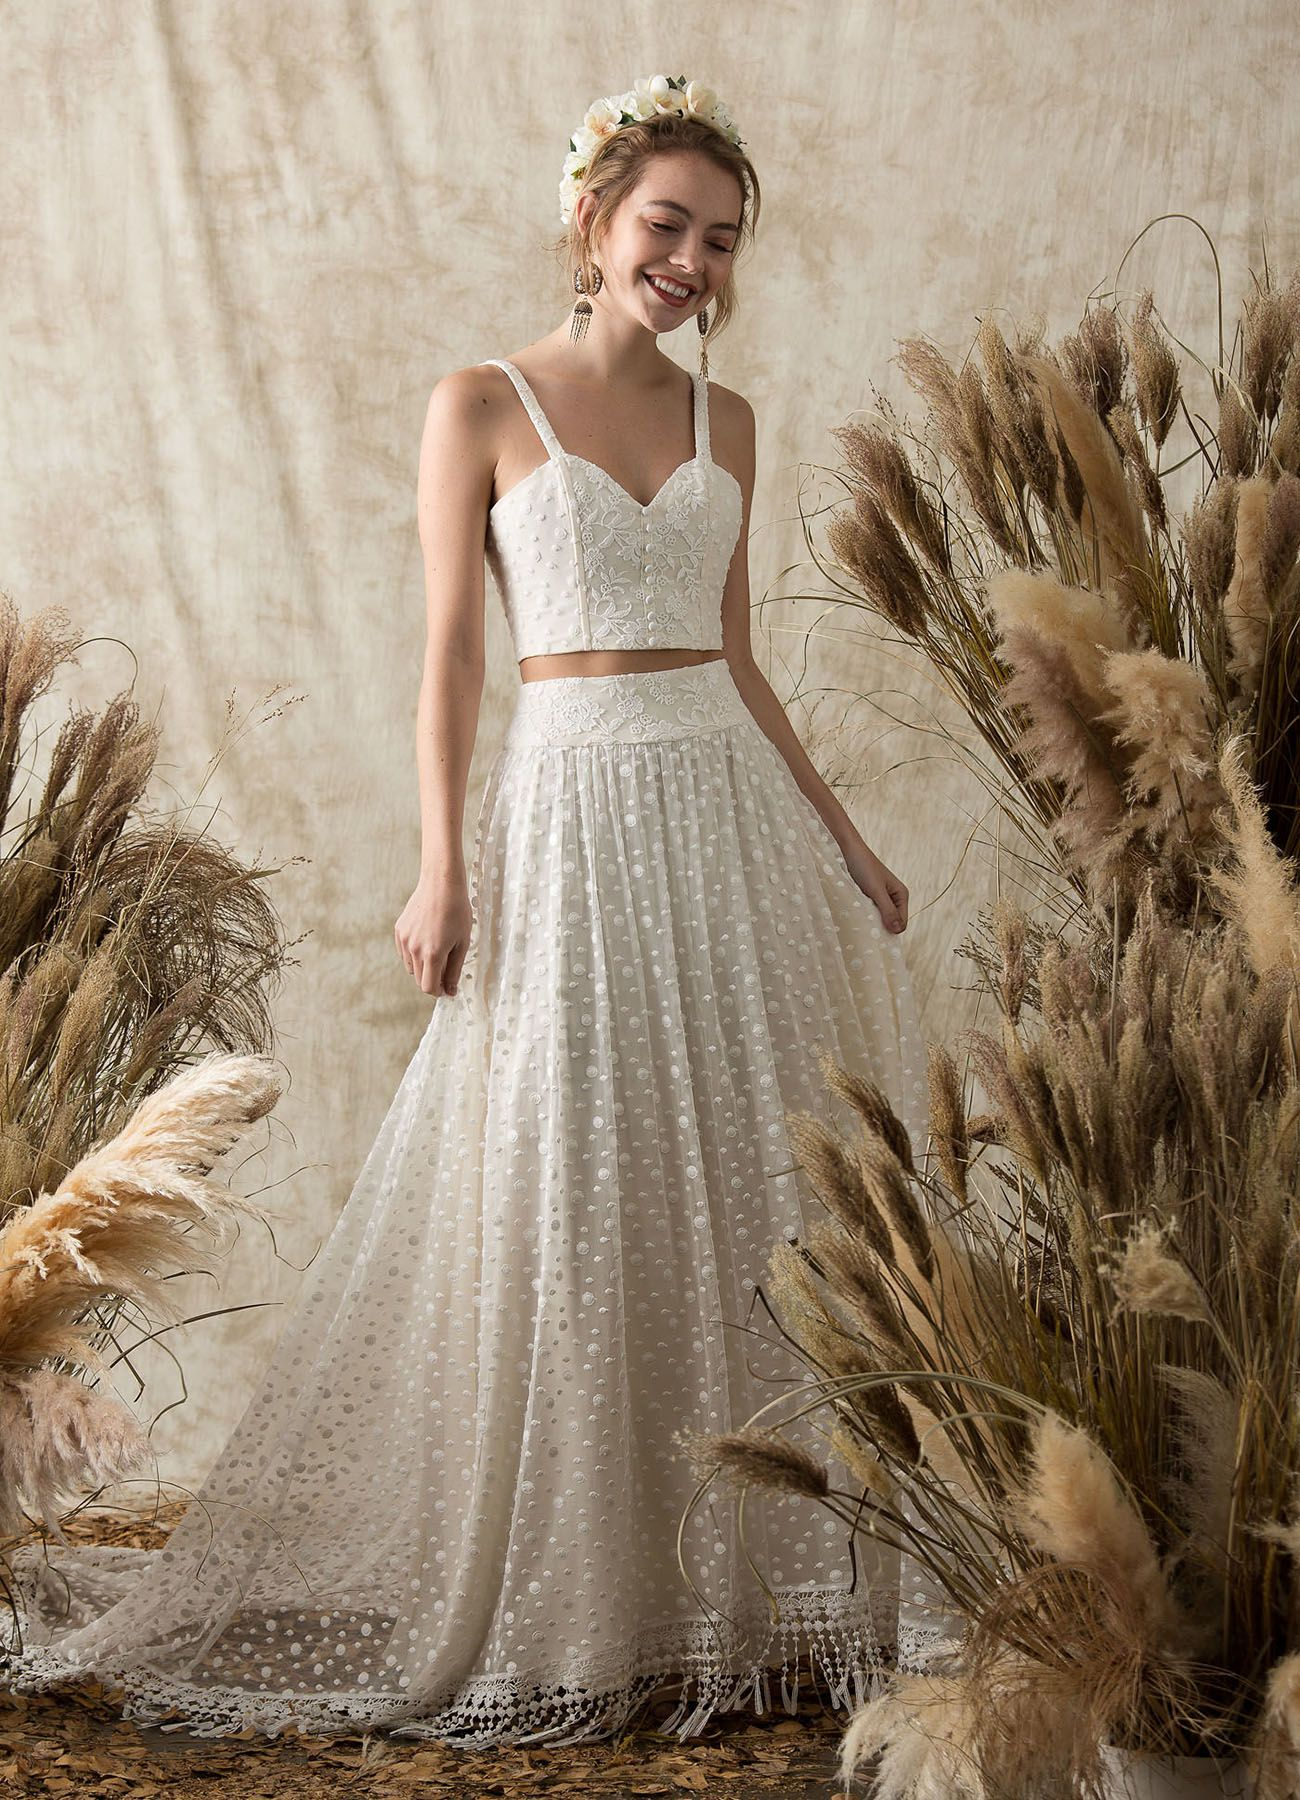 Gowns For The Laid Back Bride The Etheria Collection From